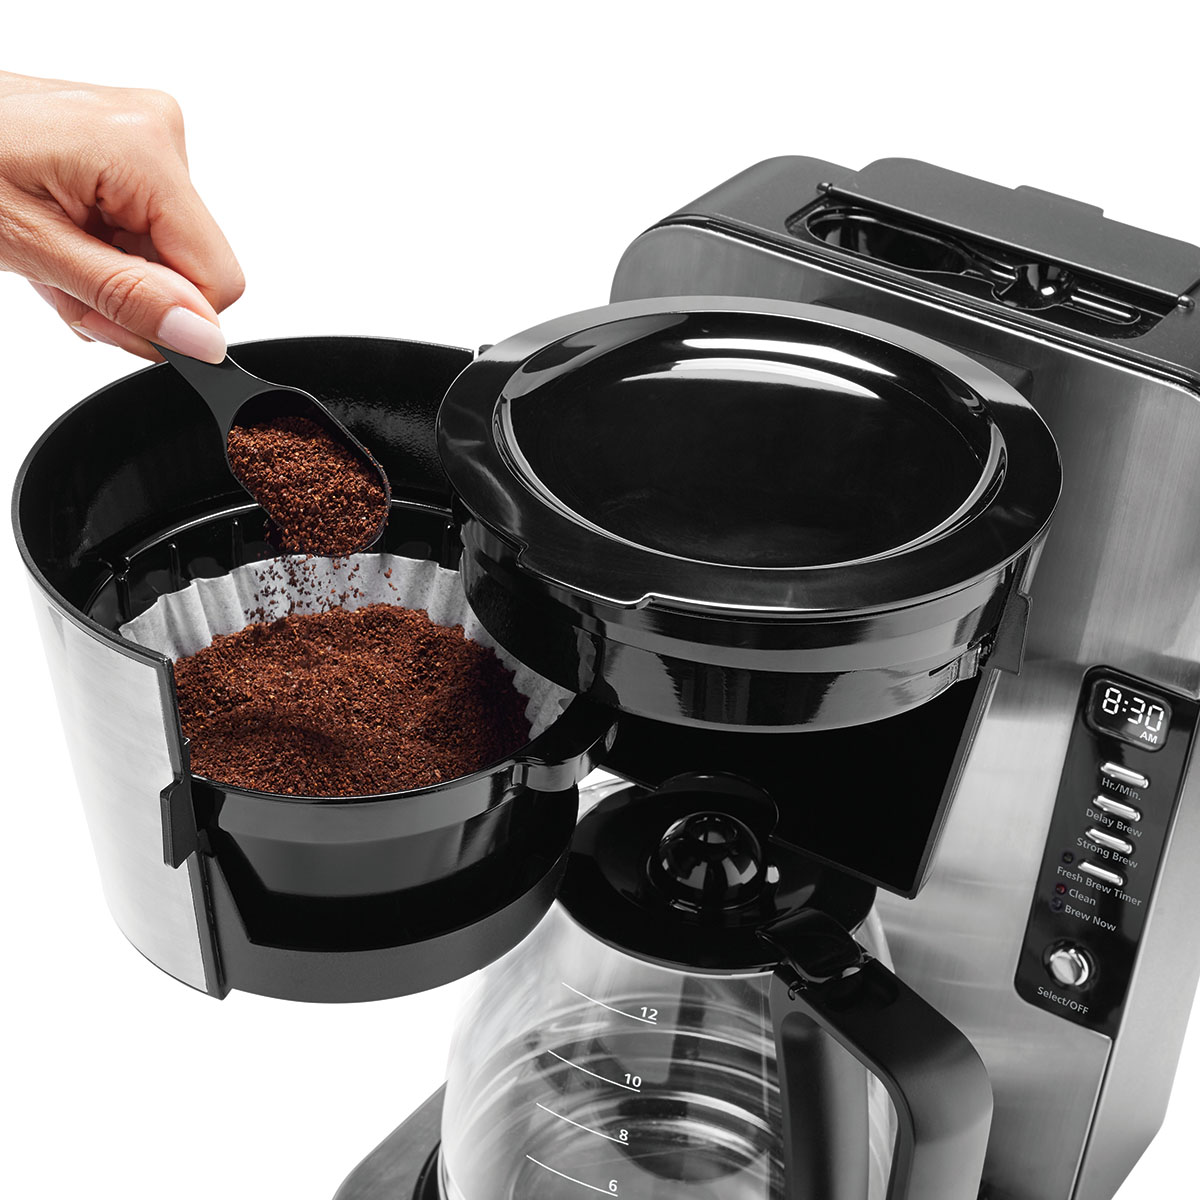 Oster 174 12 Cup Programmable Coffee Maker Stainless Steel